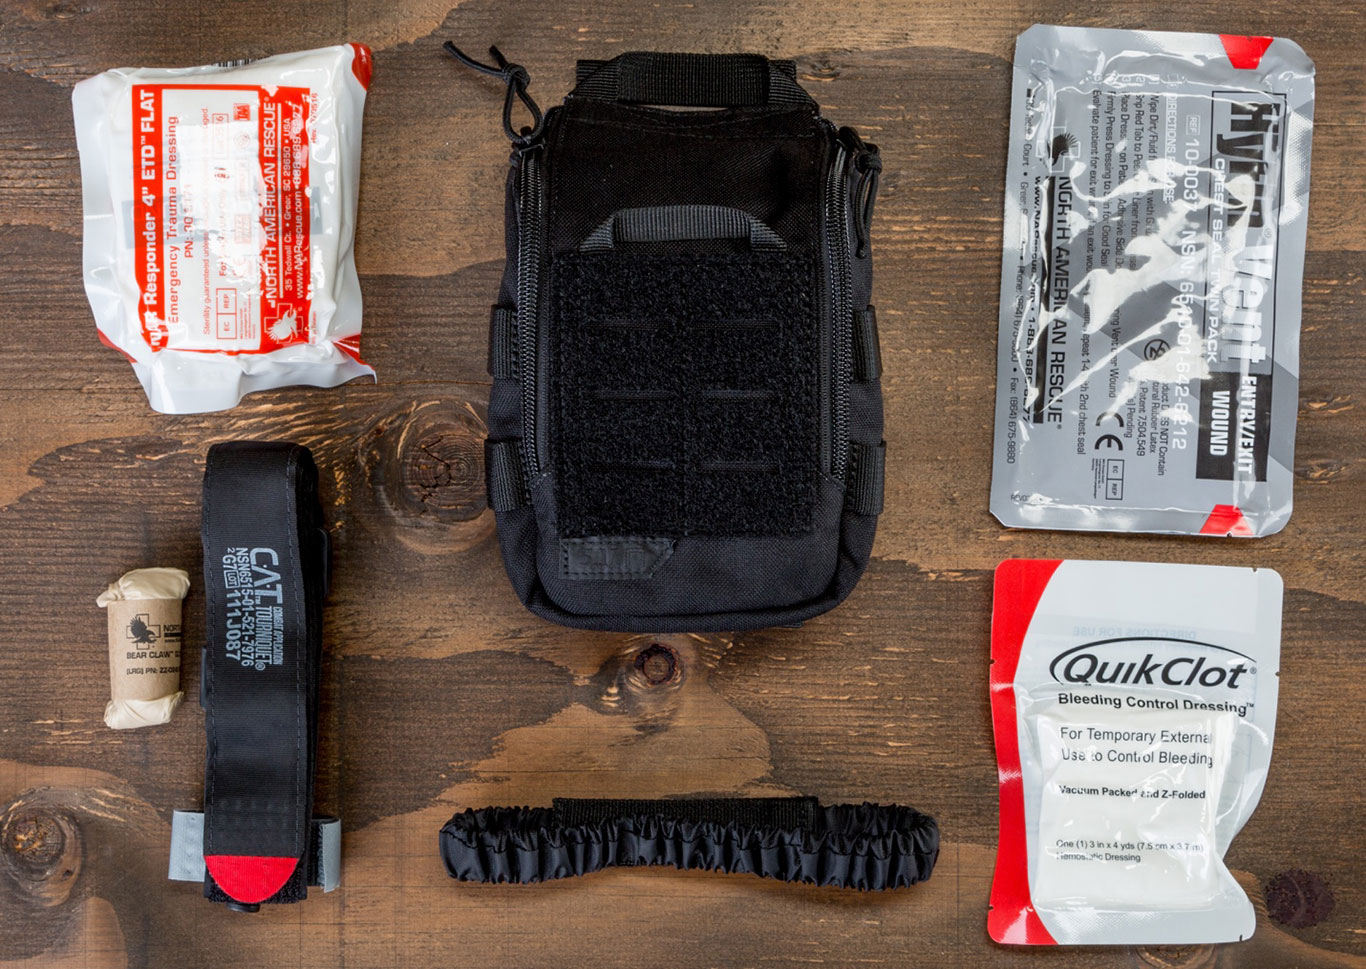 5 11 Tactical UCR IFAK - An Individual First-Aid Kit for Fir